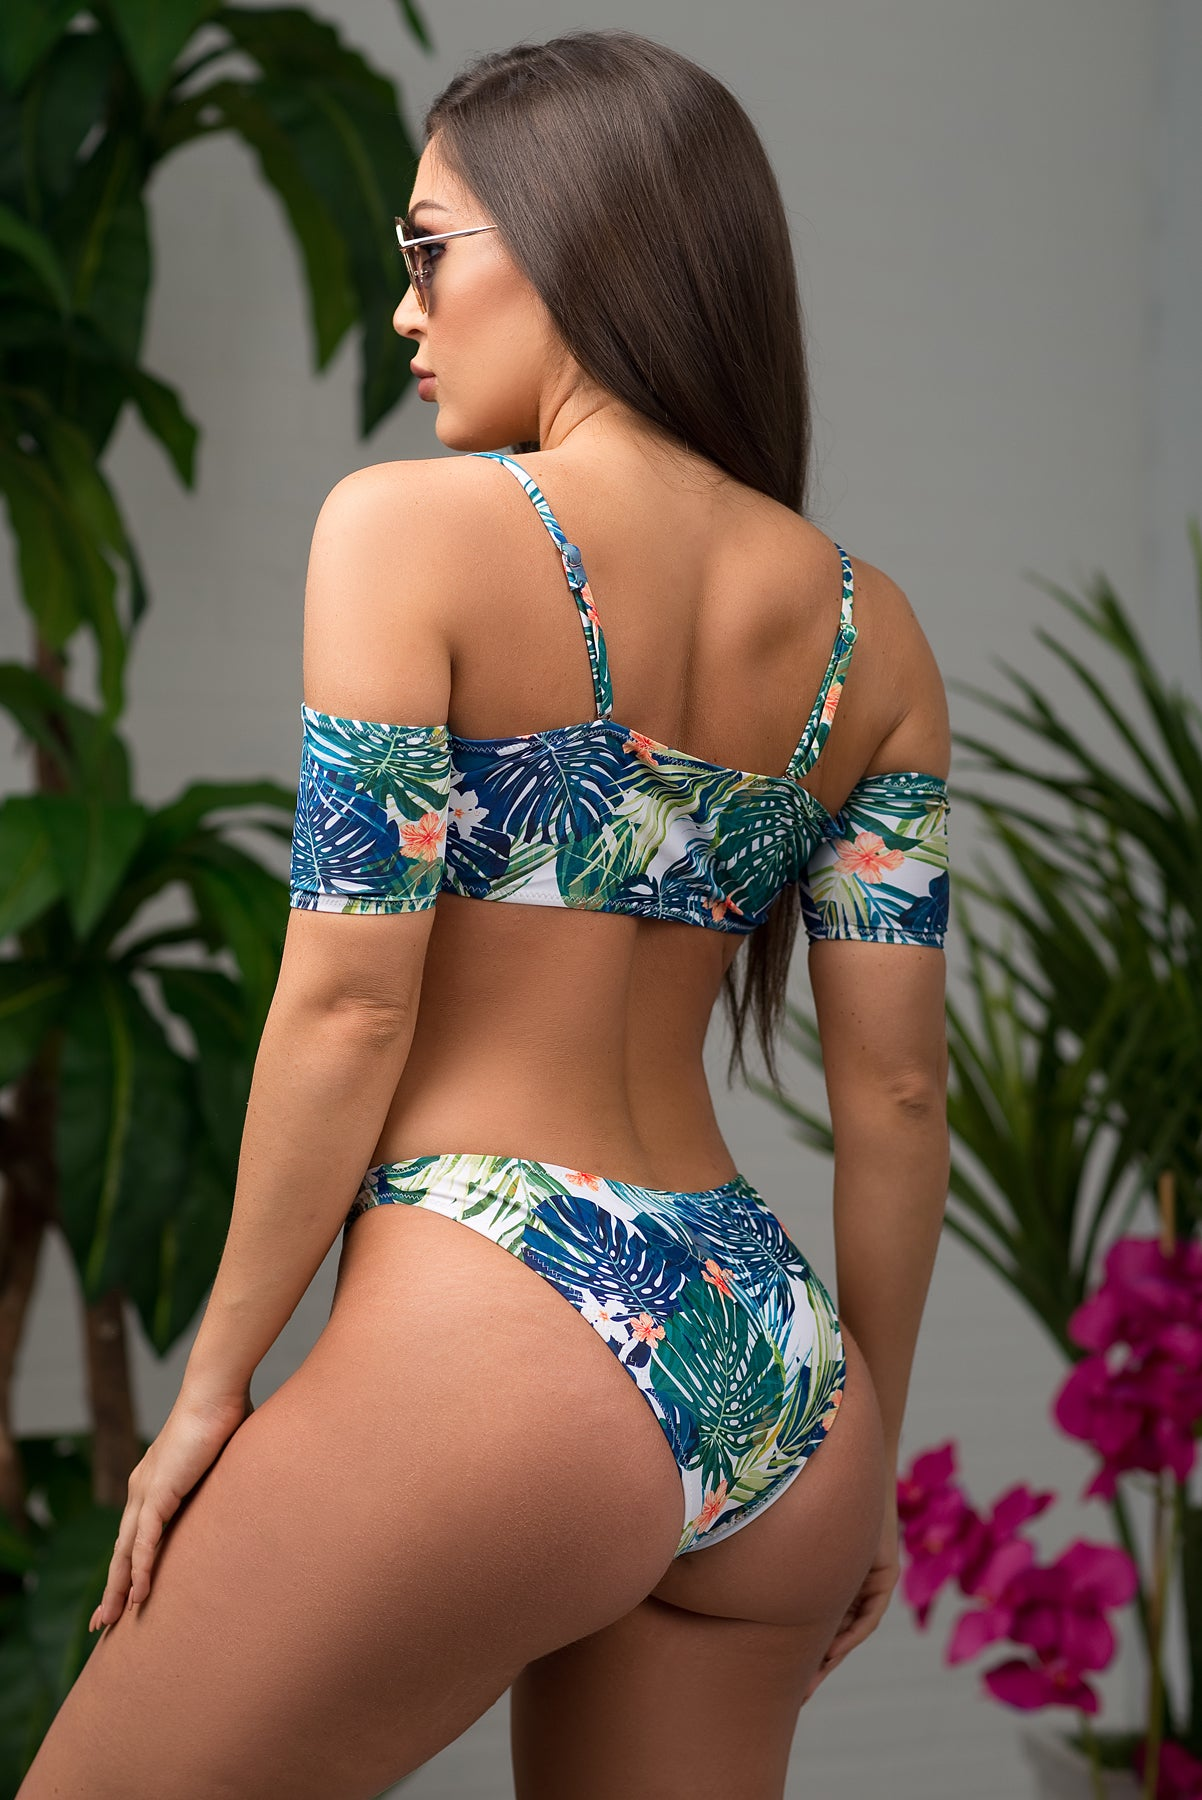 Lovers Beach Two Piece Swimsuit